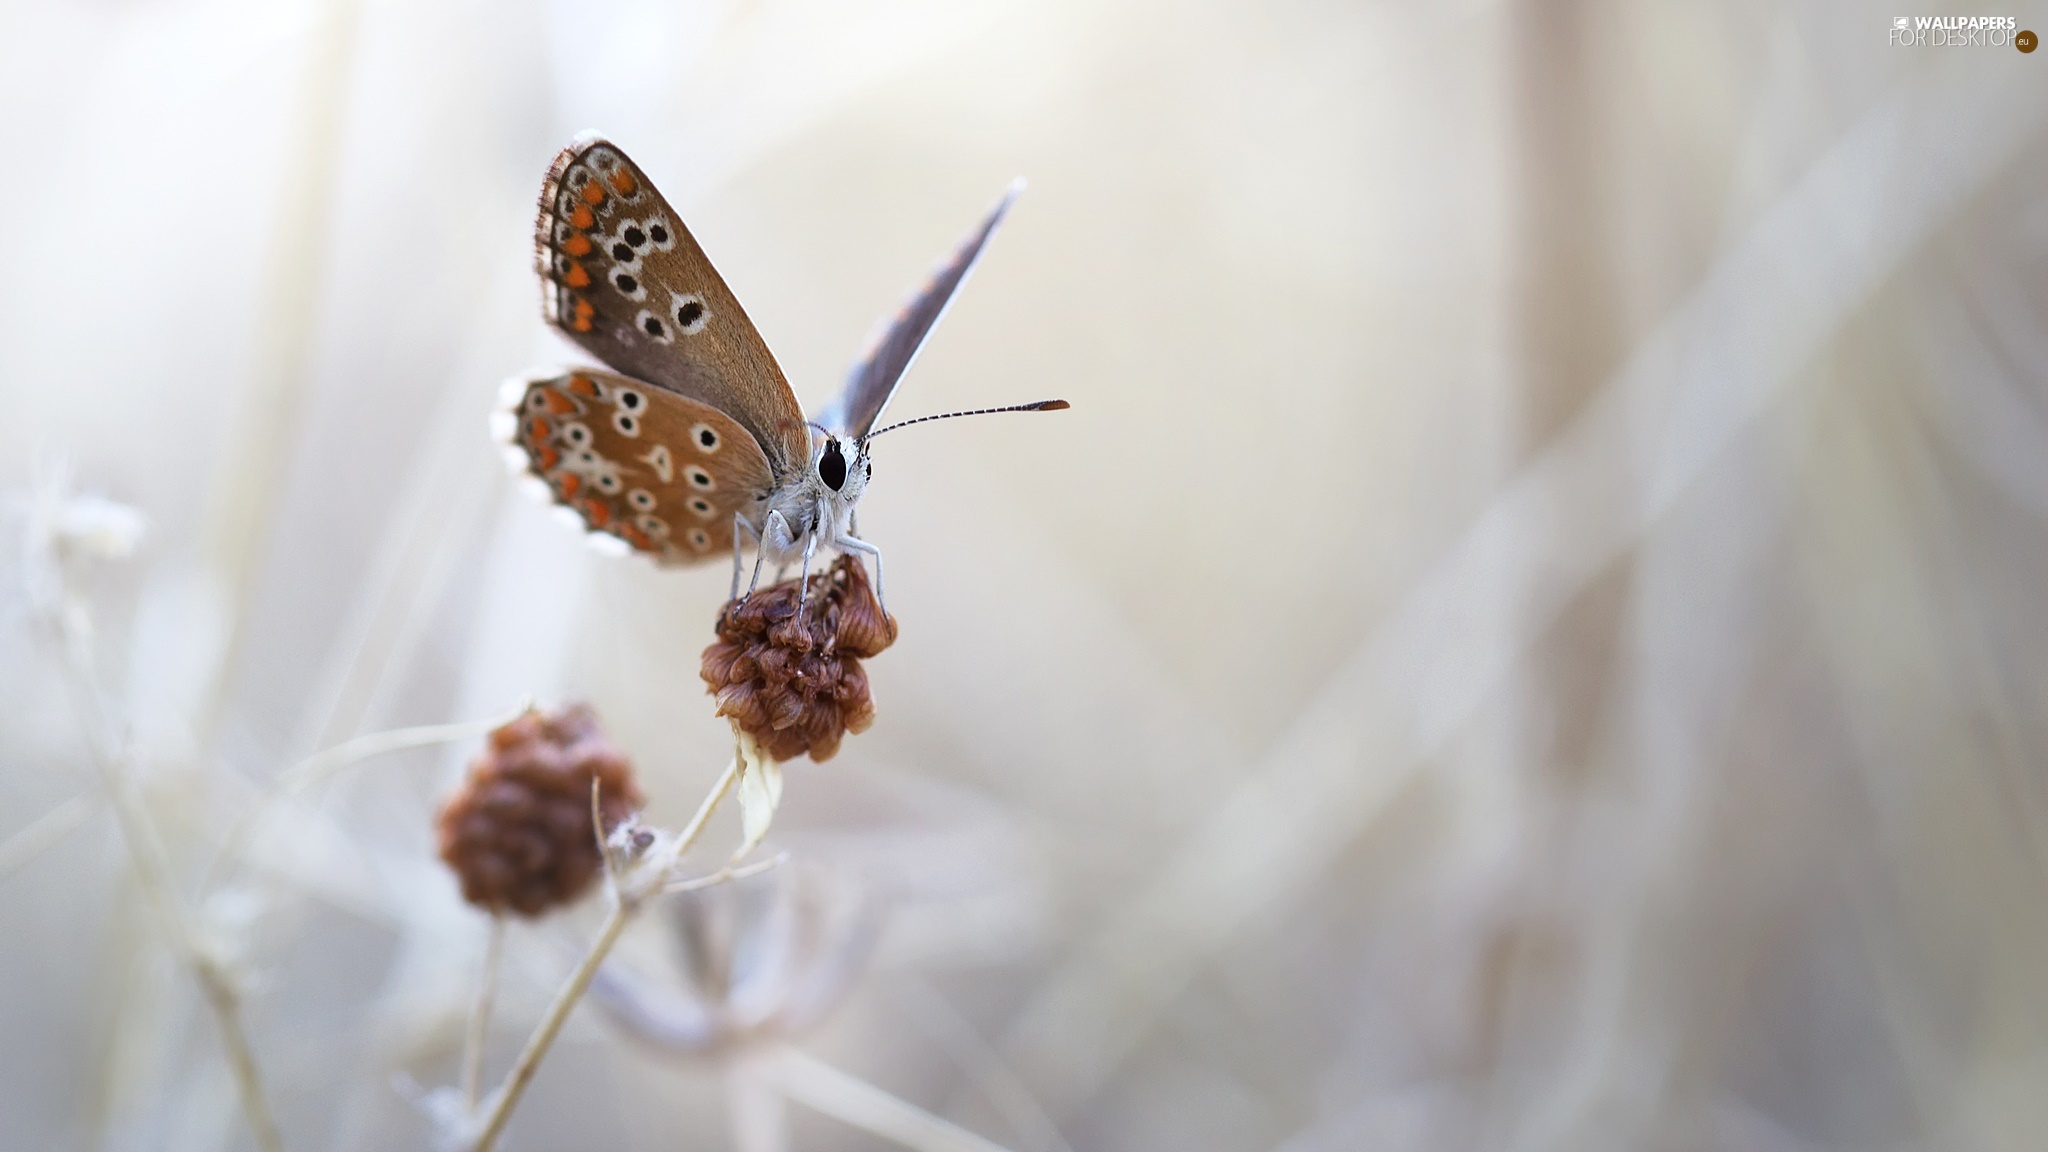 plant, butterfly, fuzzy, background, Macro, Dusky Icarus